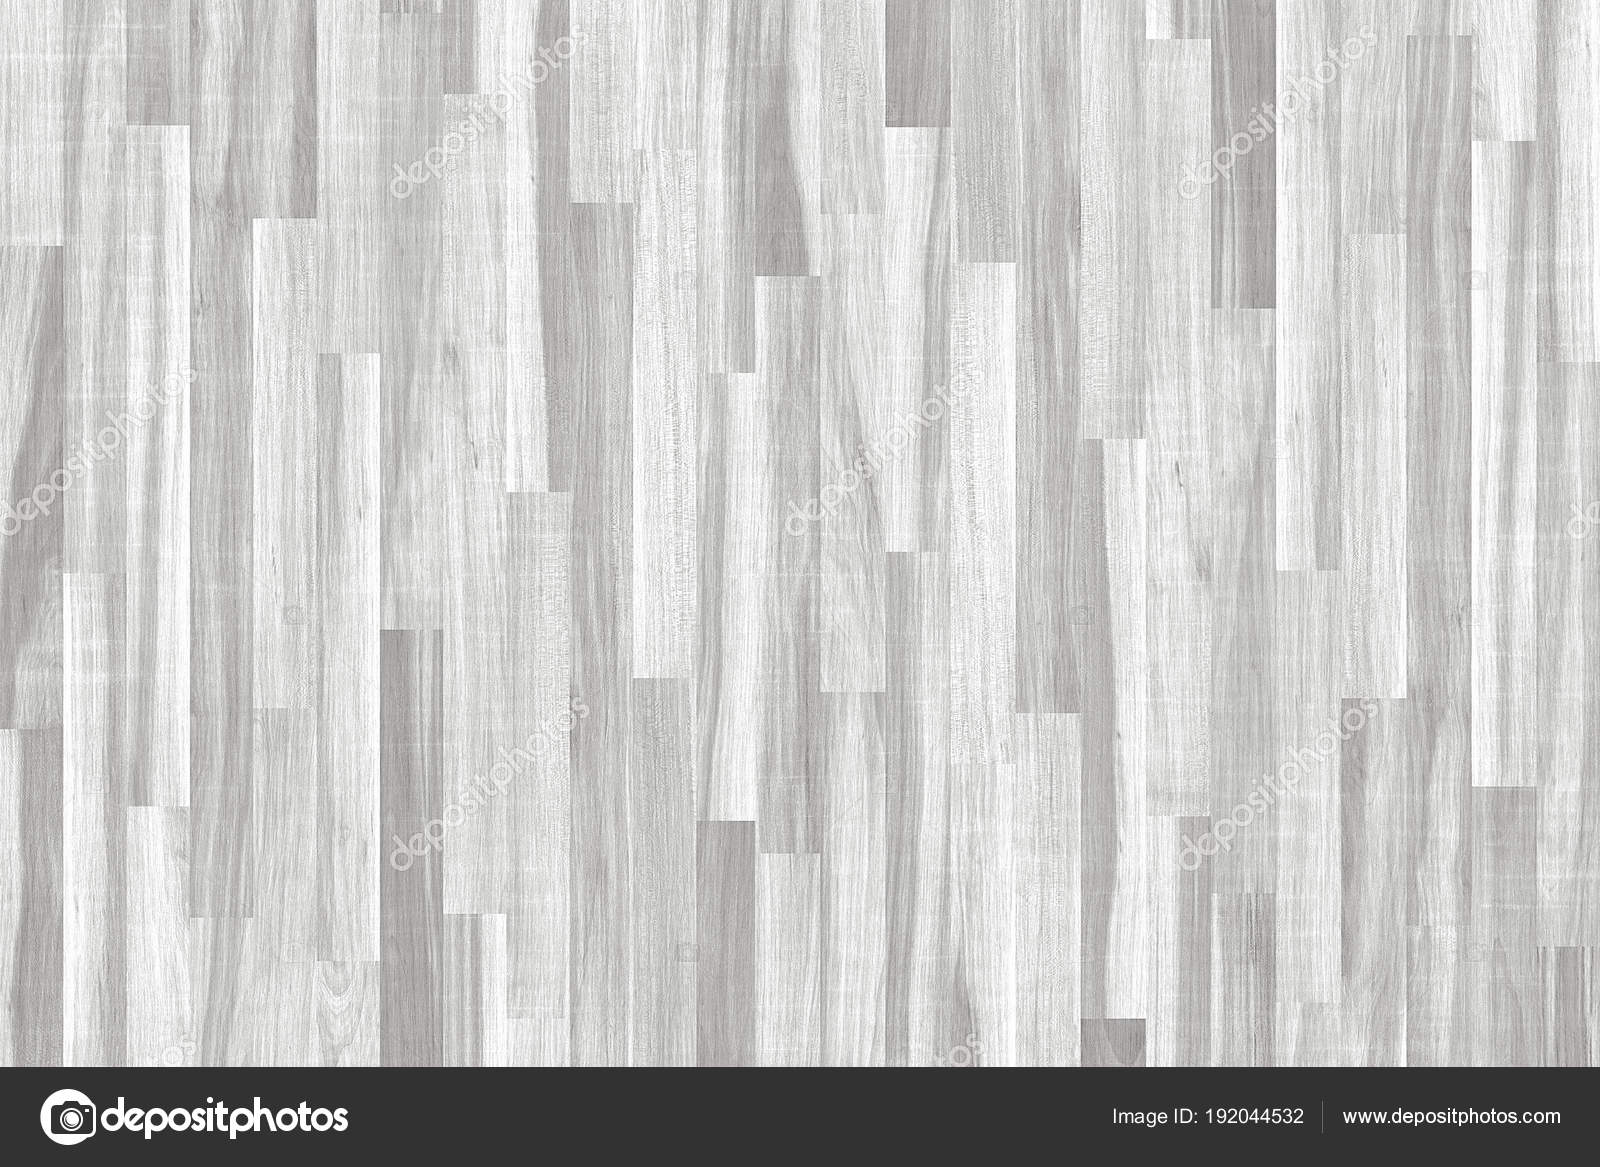 White Washed Wooden Parquet Texture, Wood Texture For Design And  Decoration. U2014 Stock Photo